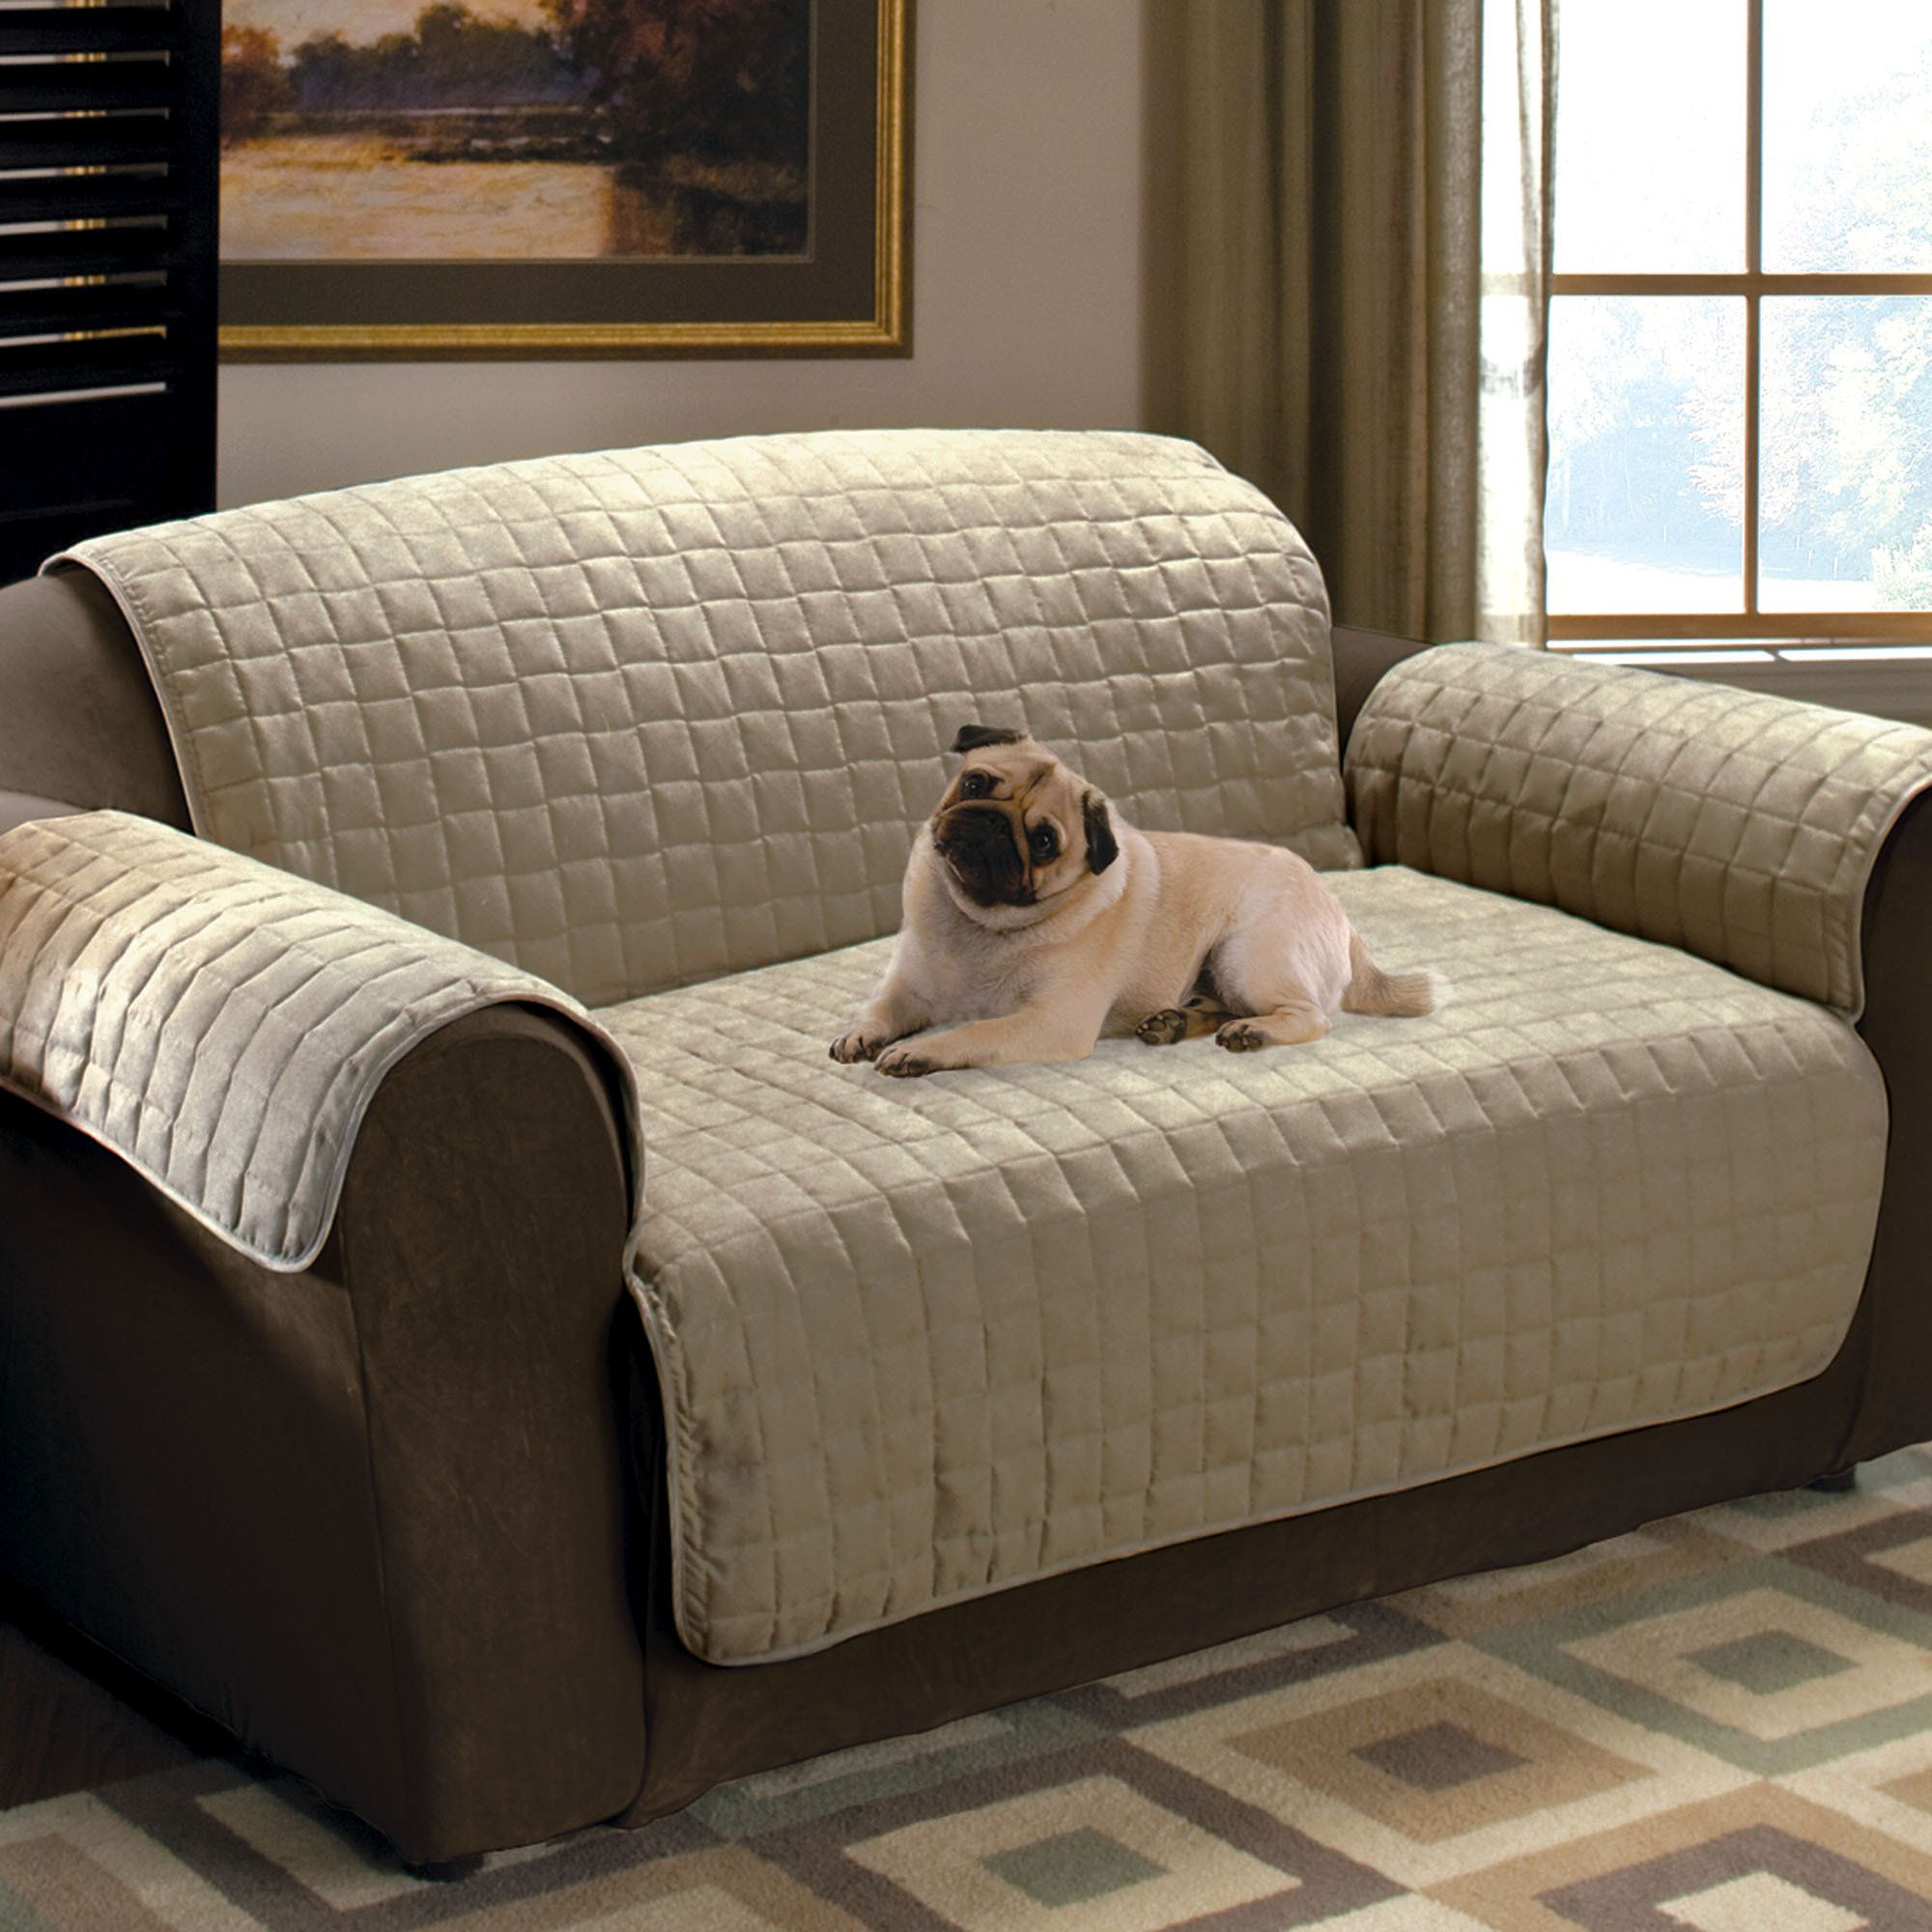 Ordinaire Microfiber Pet Furniture Covers For Sofas, Loveseats, And Chairs